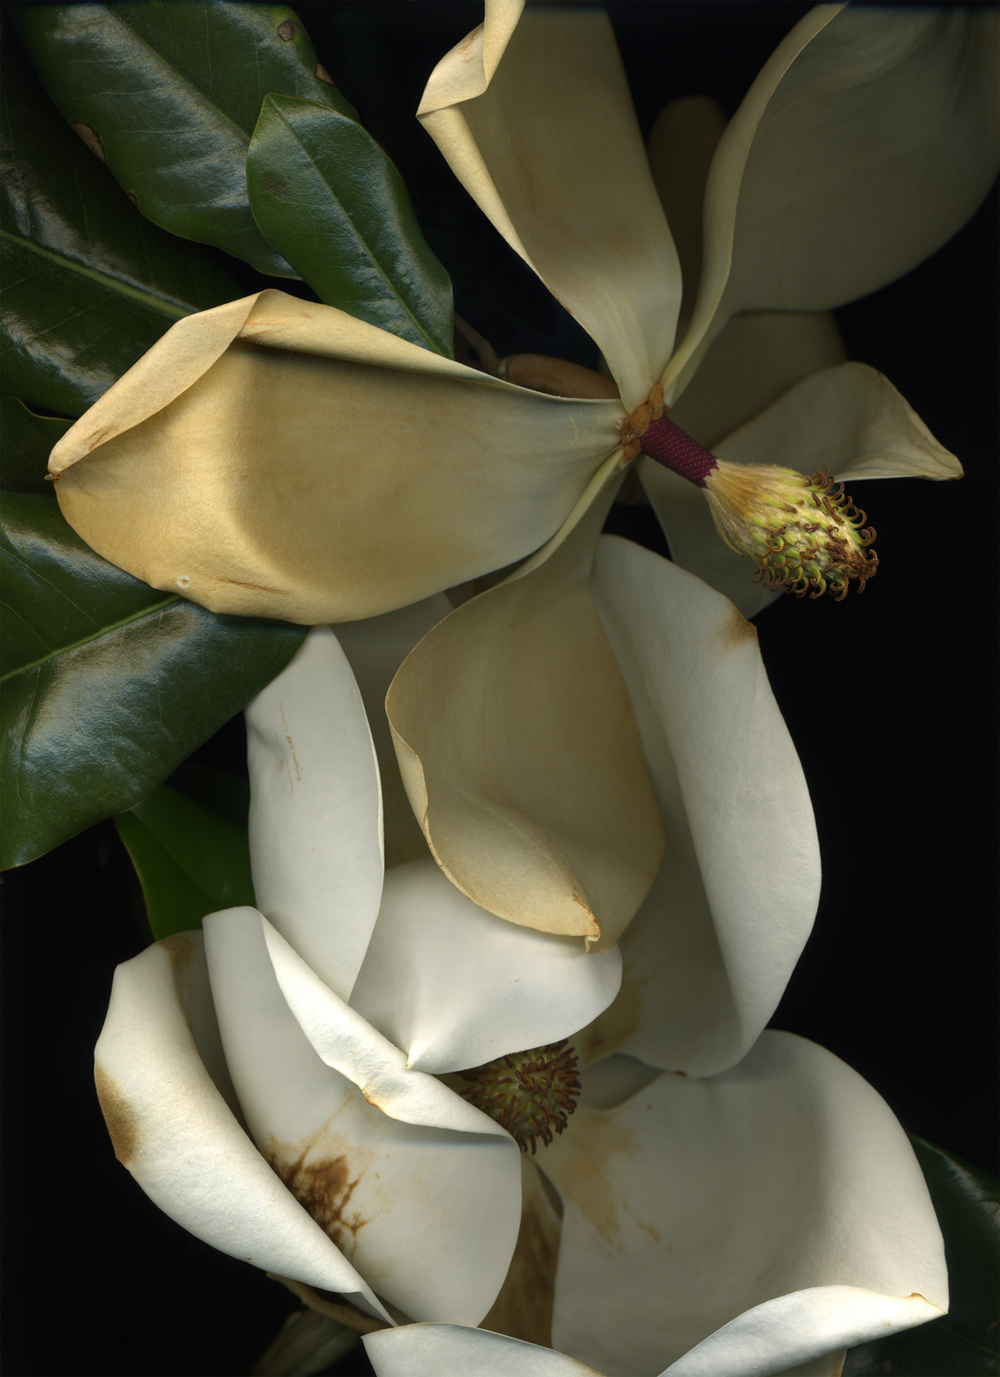 Magnolia (from the series Botanica)  Pigment inkjet print on paper  15 x 19 in.